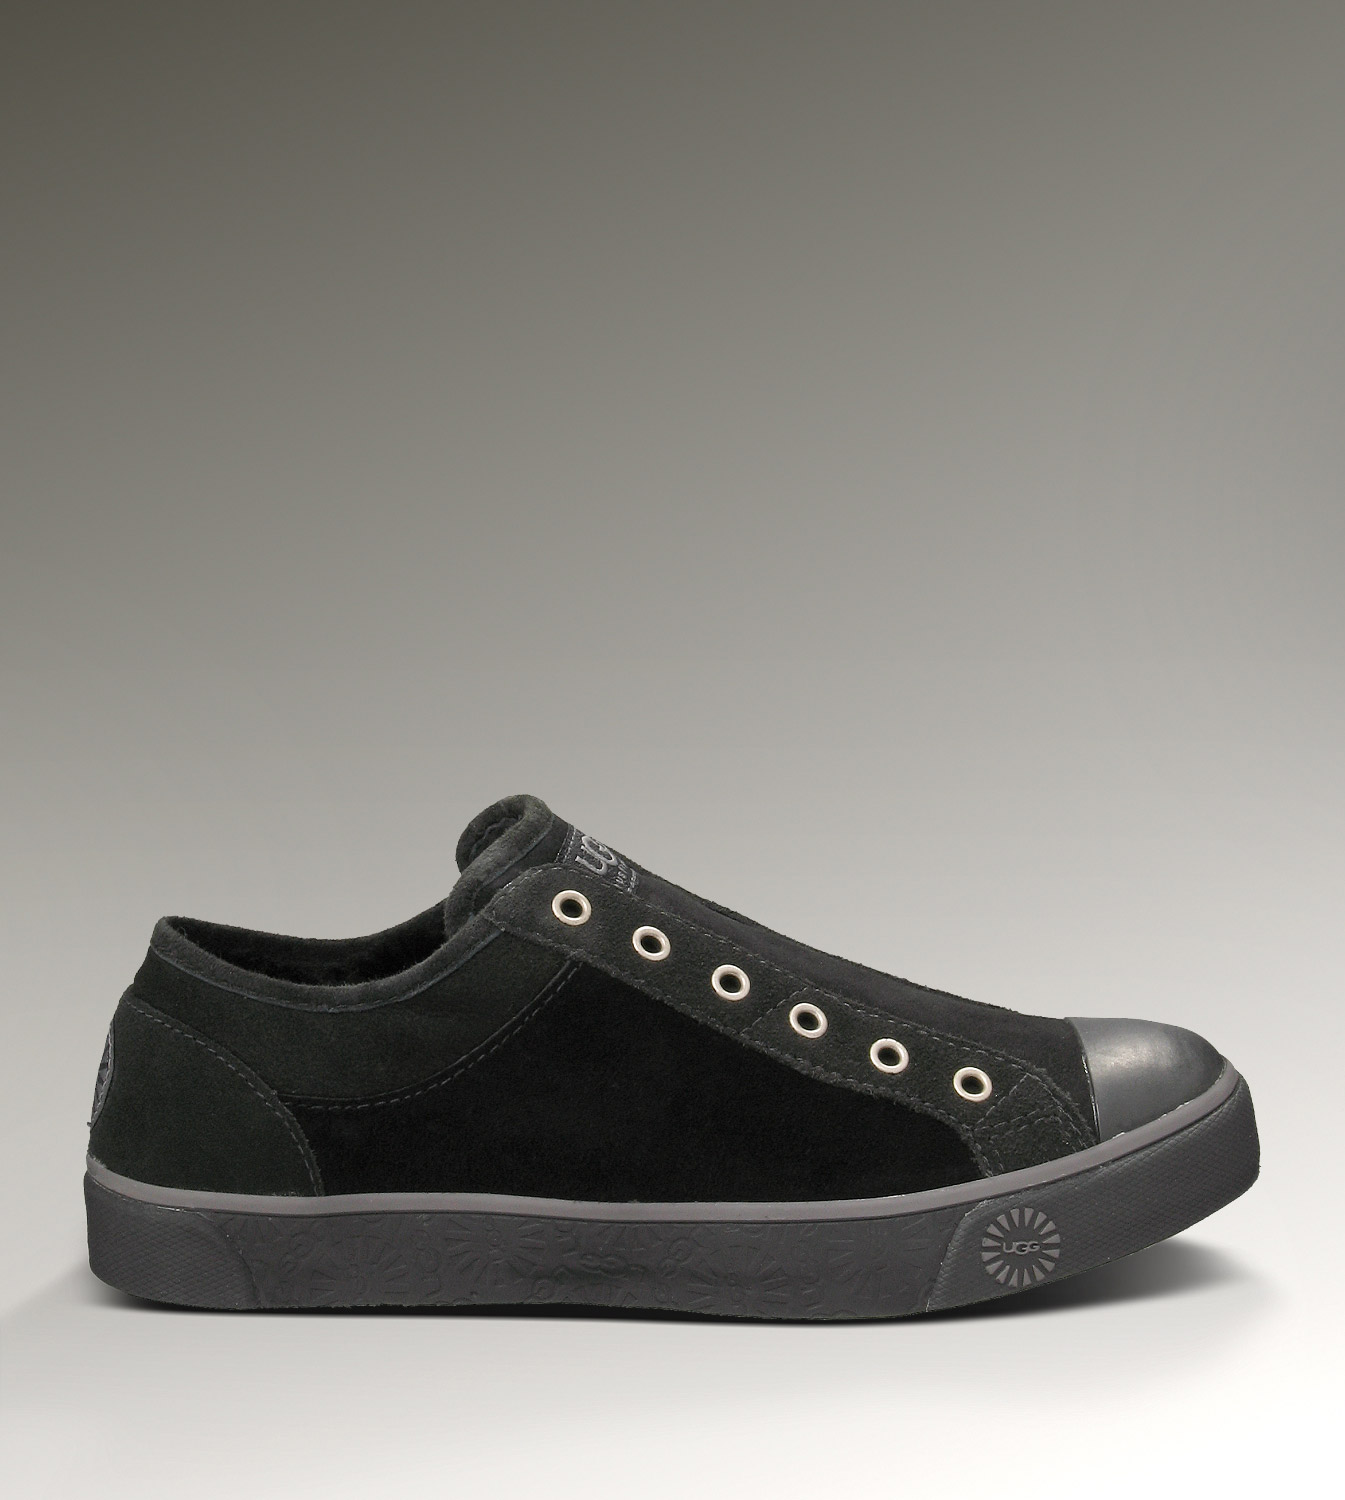 UGG Laela 3315 Black Sneakers